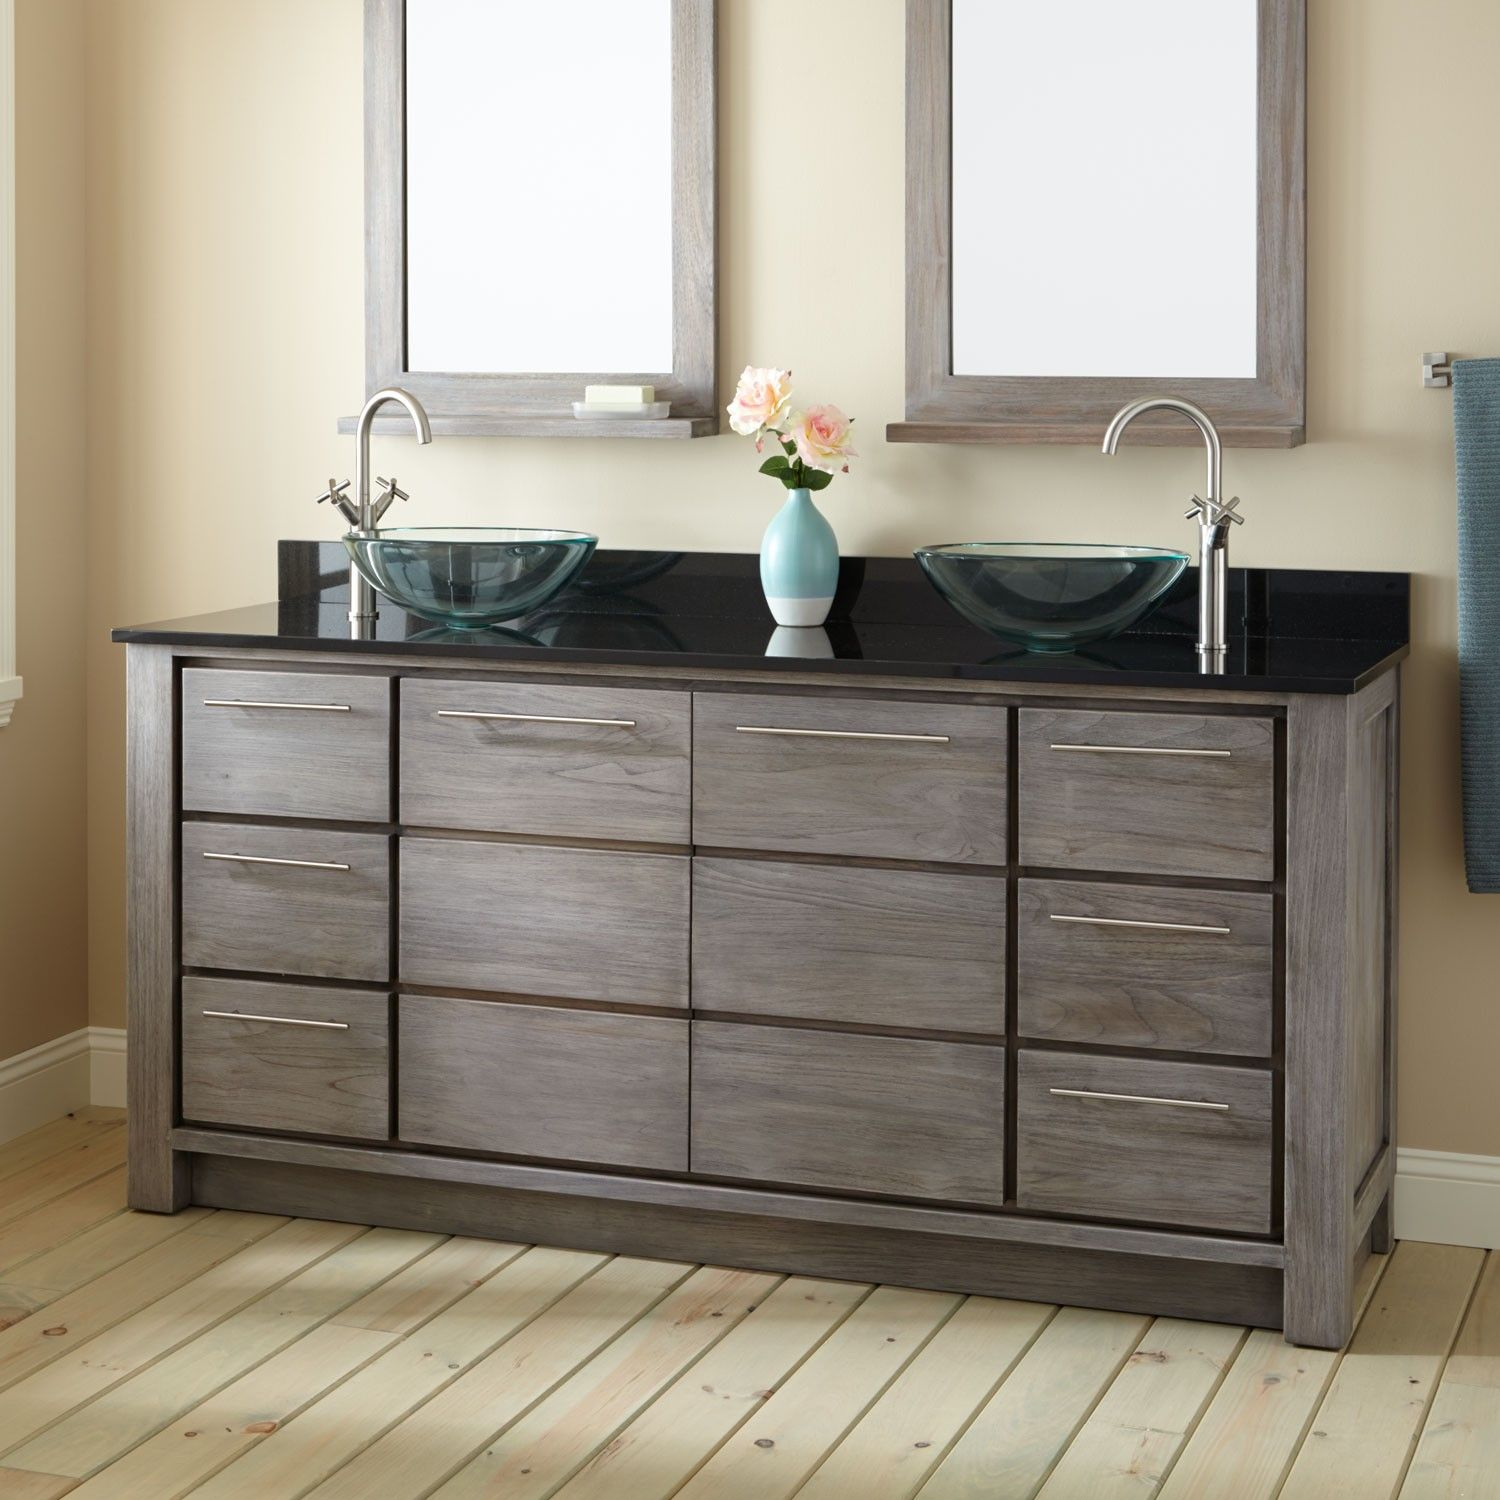 72 venica teak double vessel sinks vanity gray wash - Contemporary double sink bathroom vanity ...